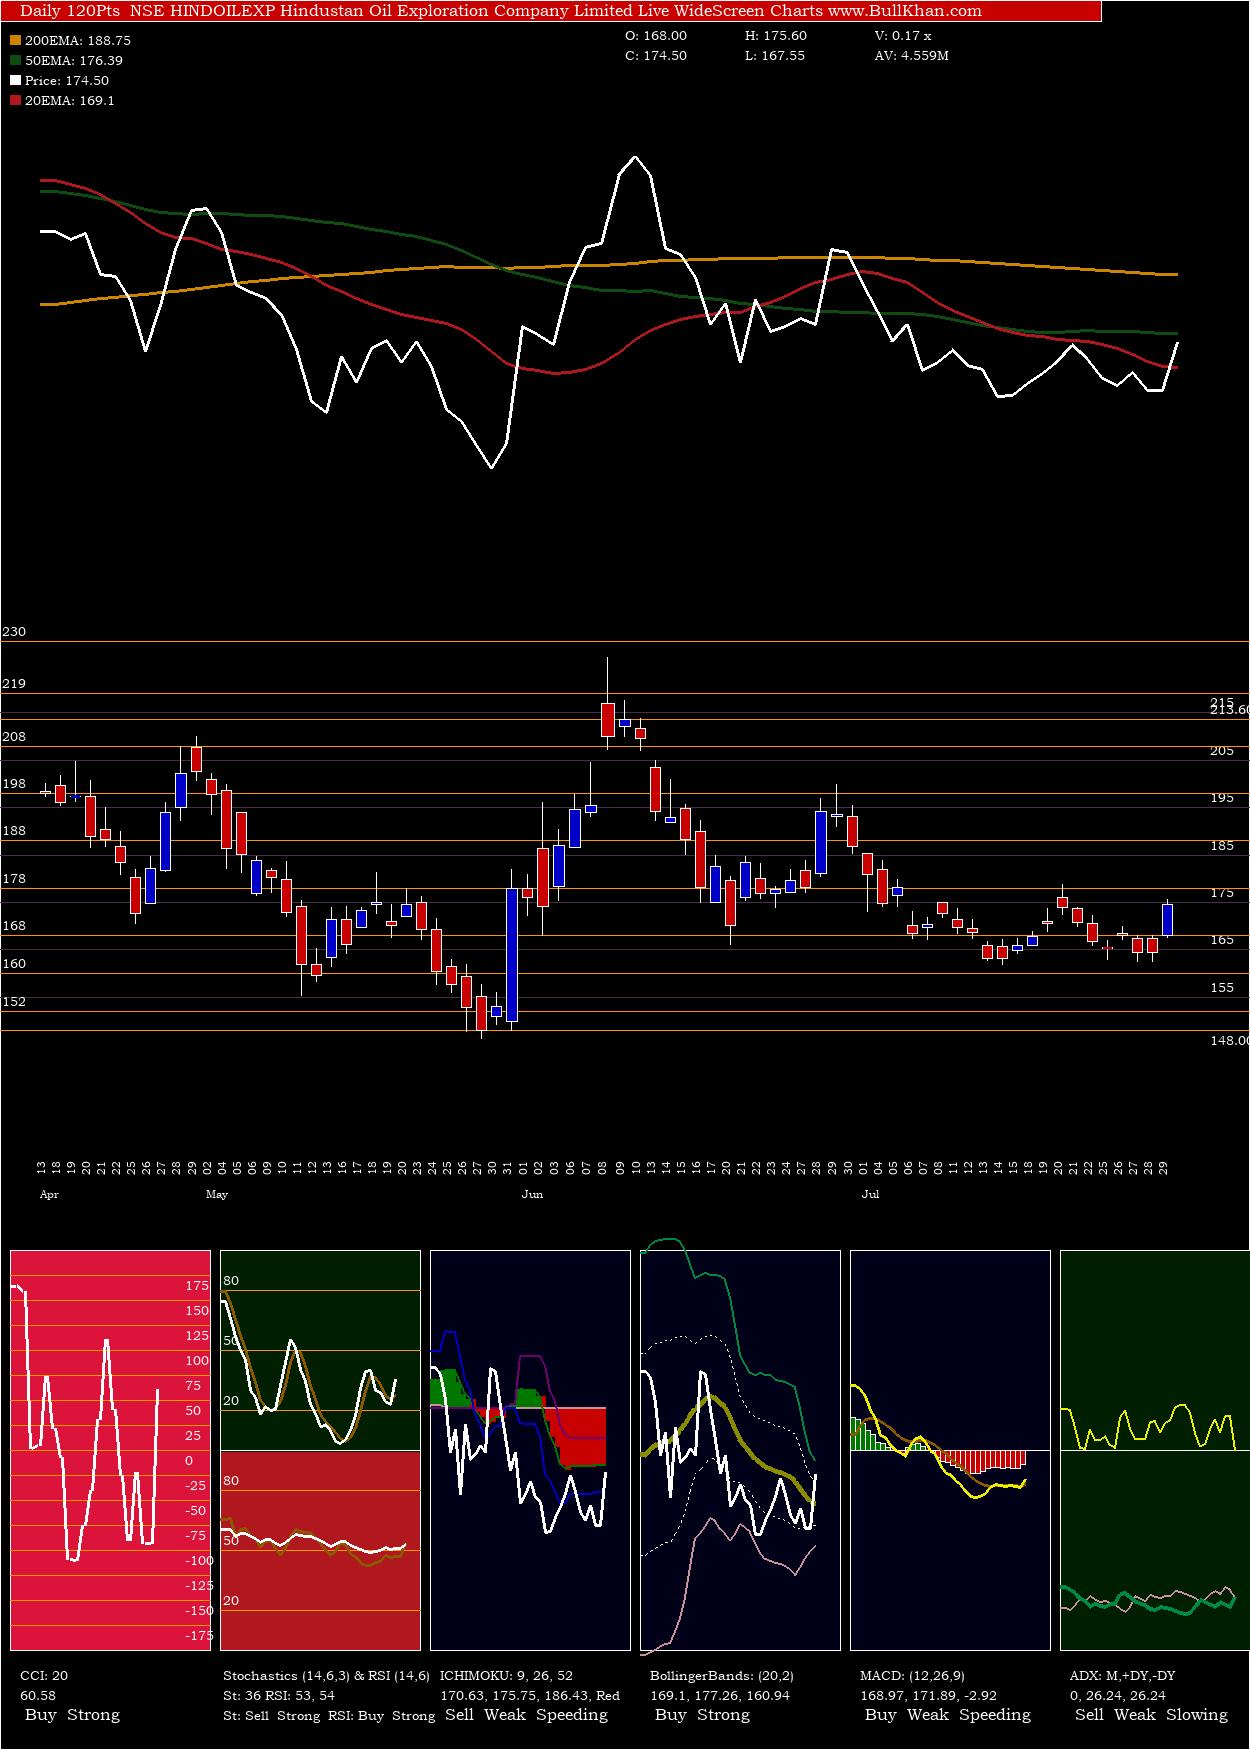 Hindustan Oil Exploration Company Limited charts and indicators